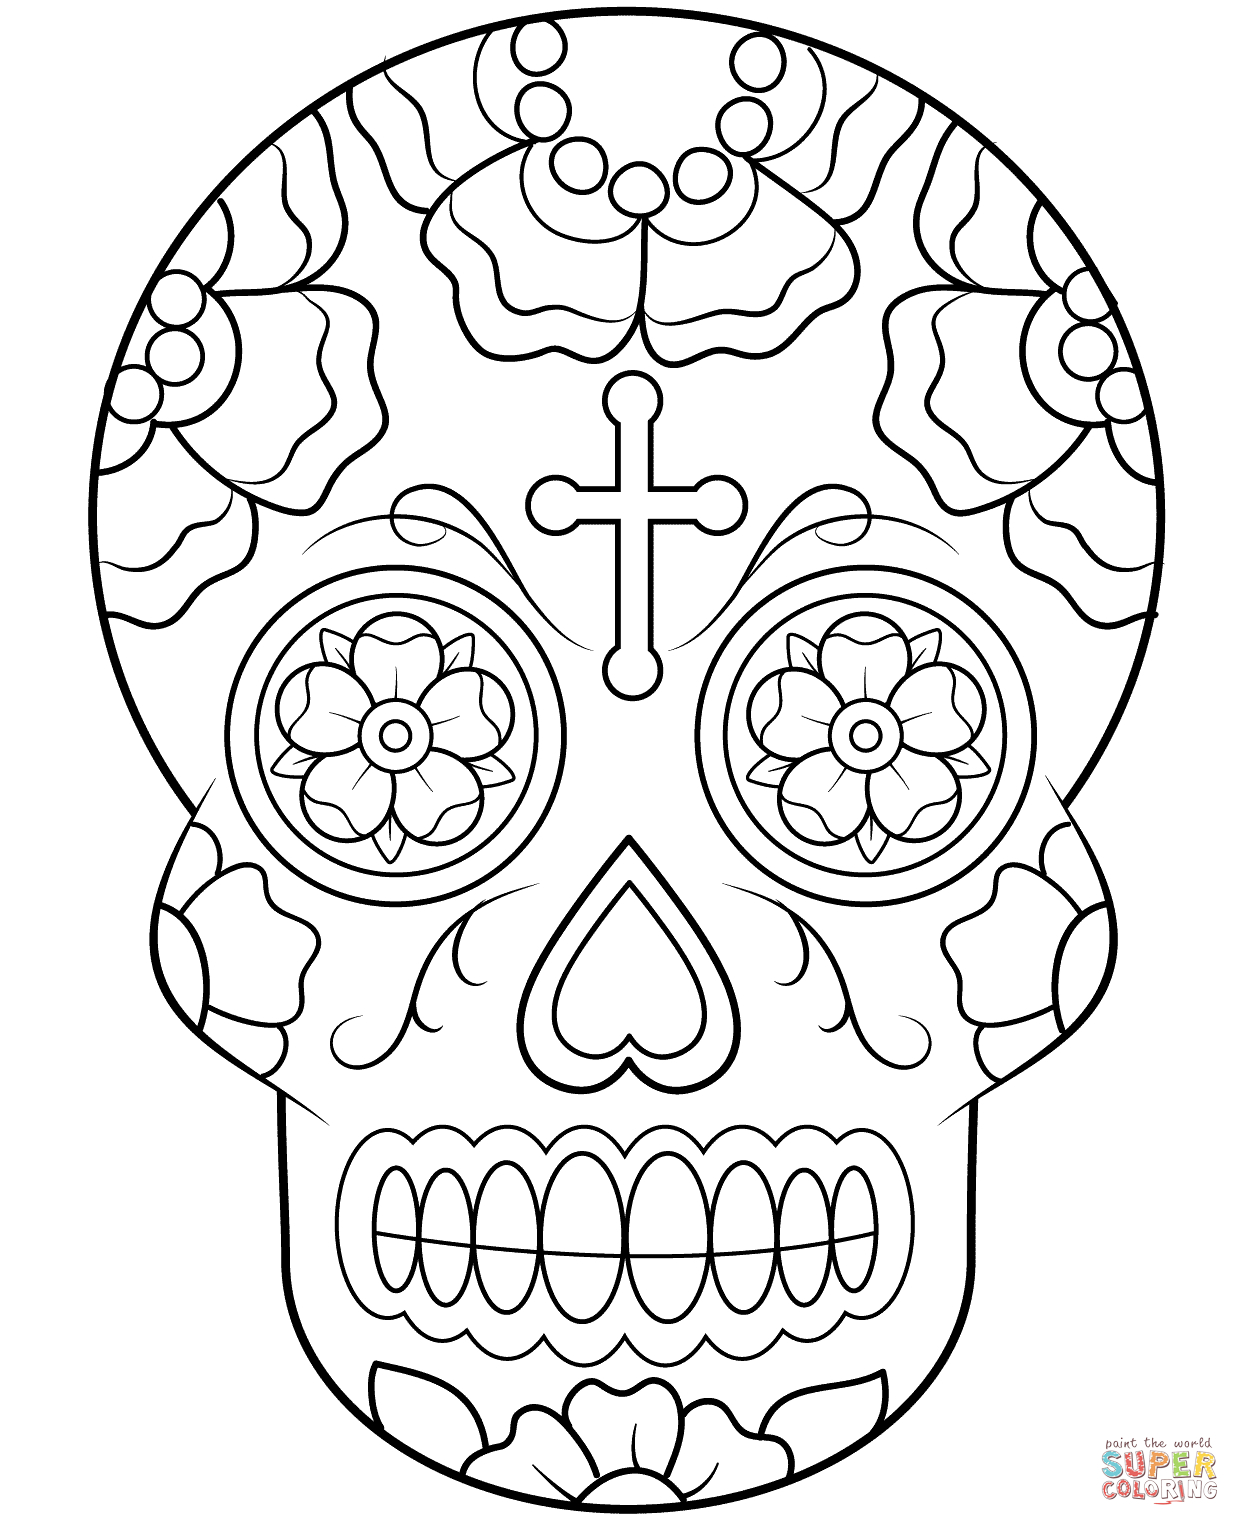 Skull Color Pages Calavera Sugar Skull Coloring Page Free Printable Coloring Pages